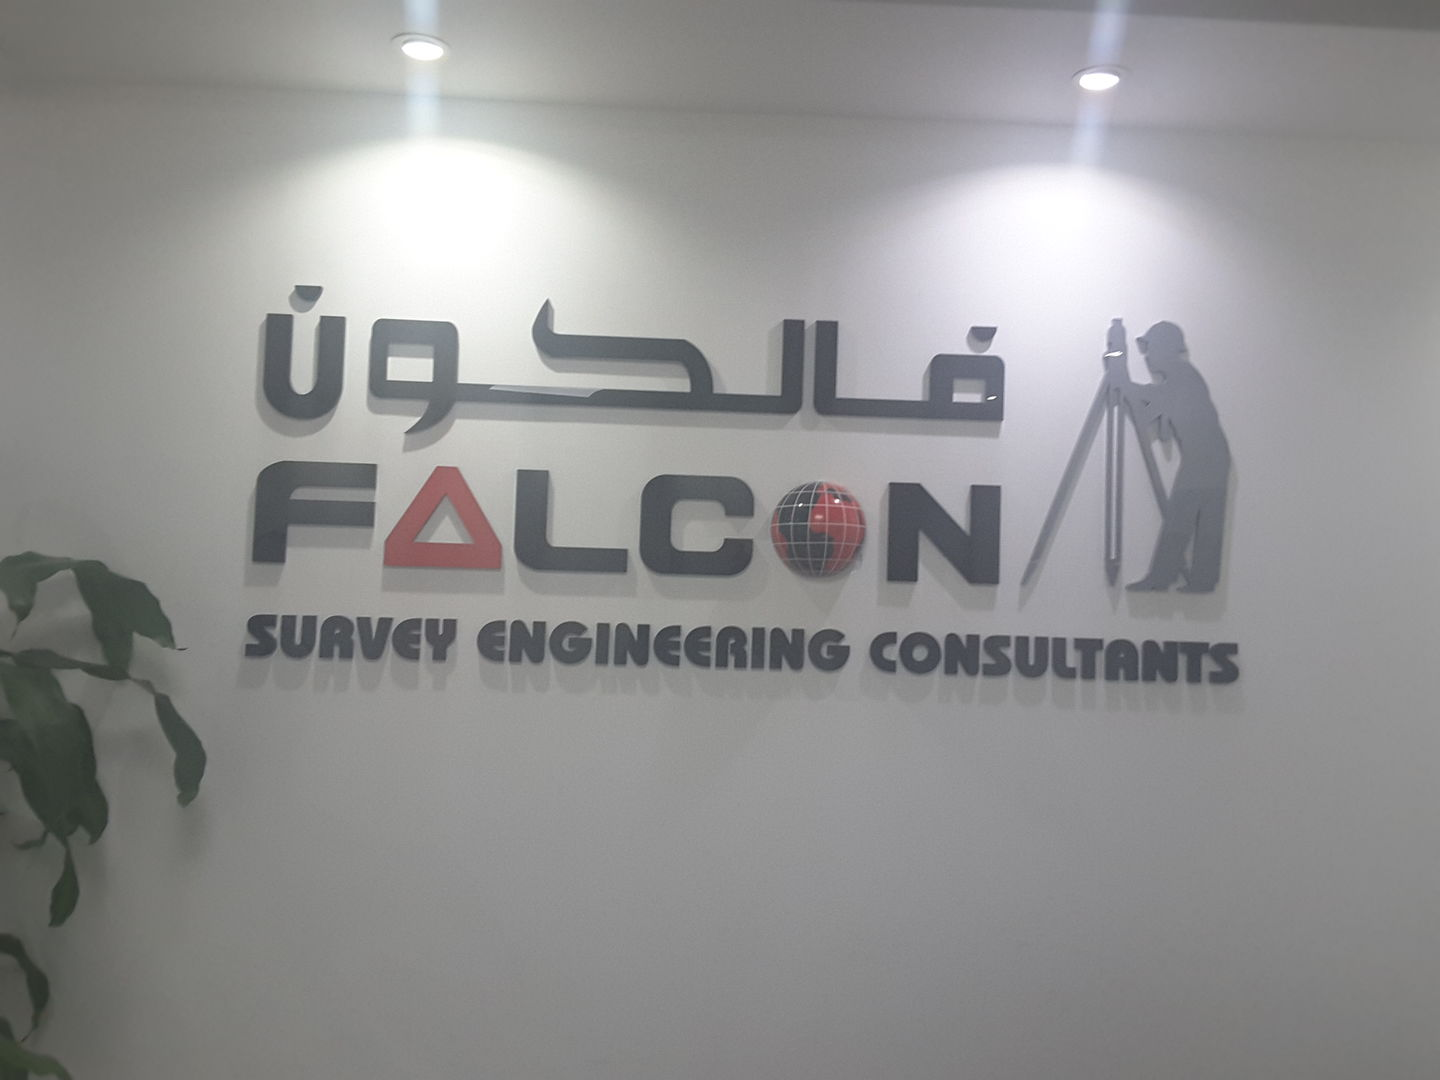 HiDubai-business-falcon-survey-engineering-consultants-construction-heavy-industries-engineers-surveyors-dubai-silicon-oasis-nadd-hessa-dubai-2